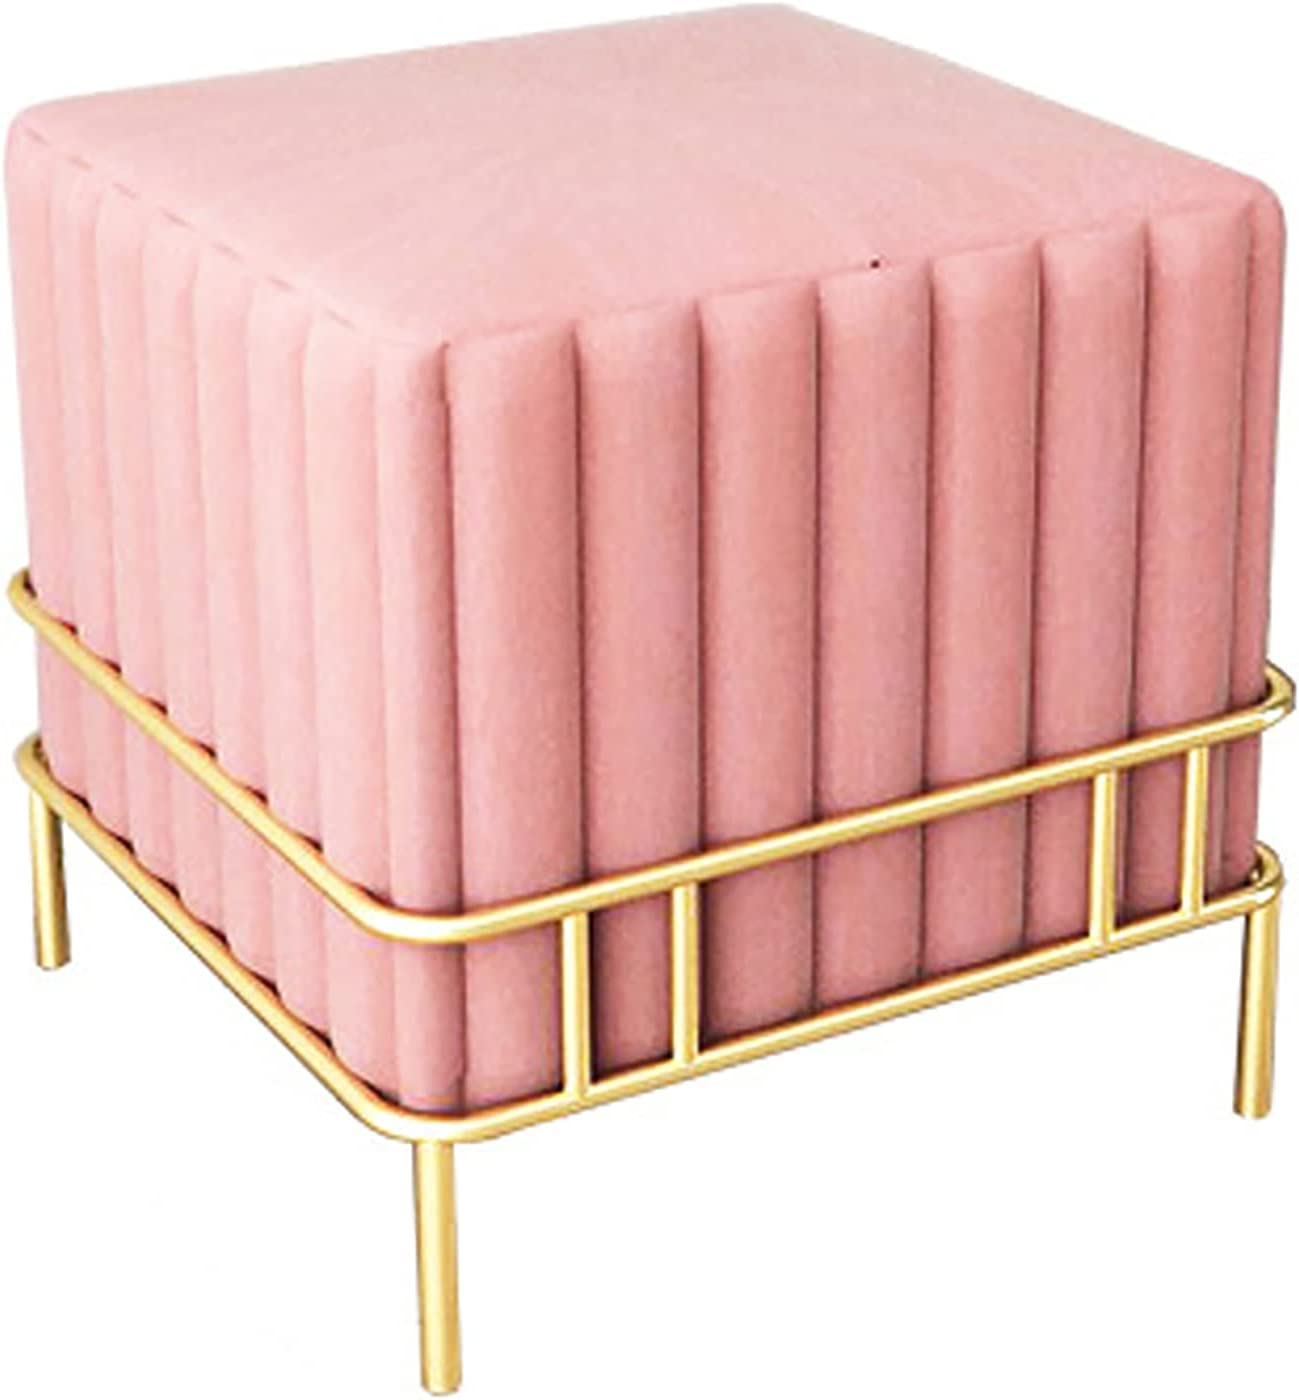 ZHAORU Max 88% We OFFer at cheap prices OFF Cube Flannel Footstool Metal Modern Simple Uph Legs Style